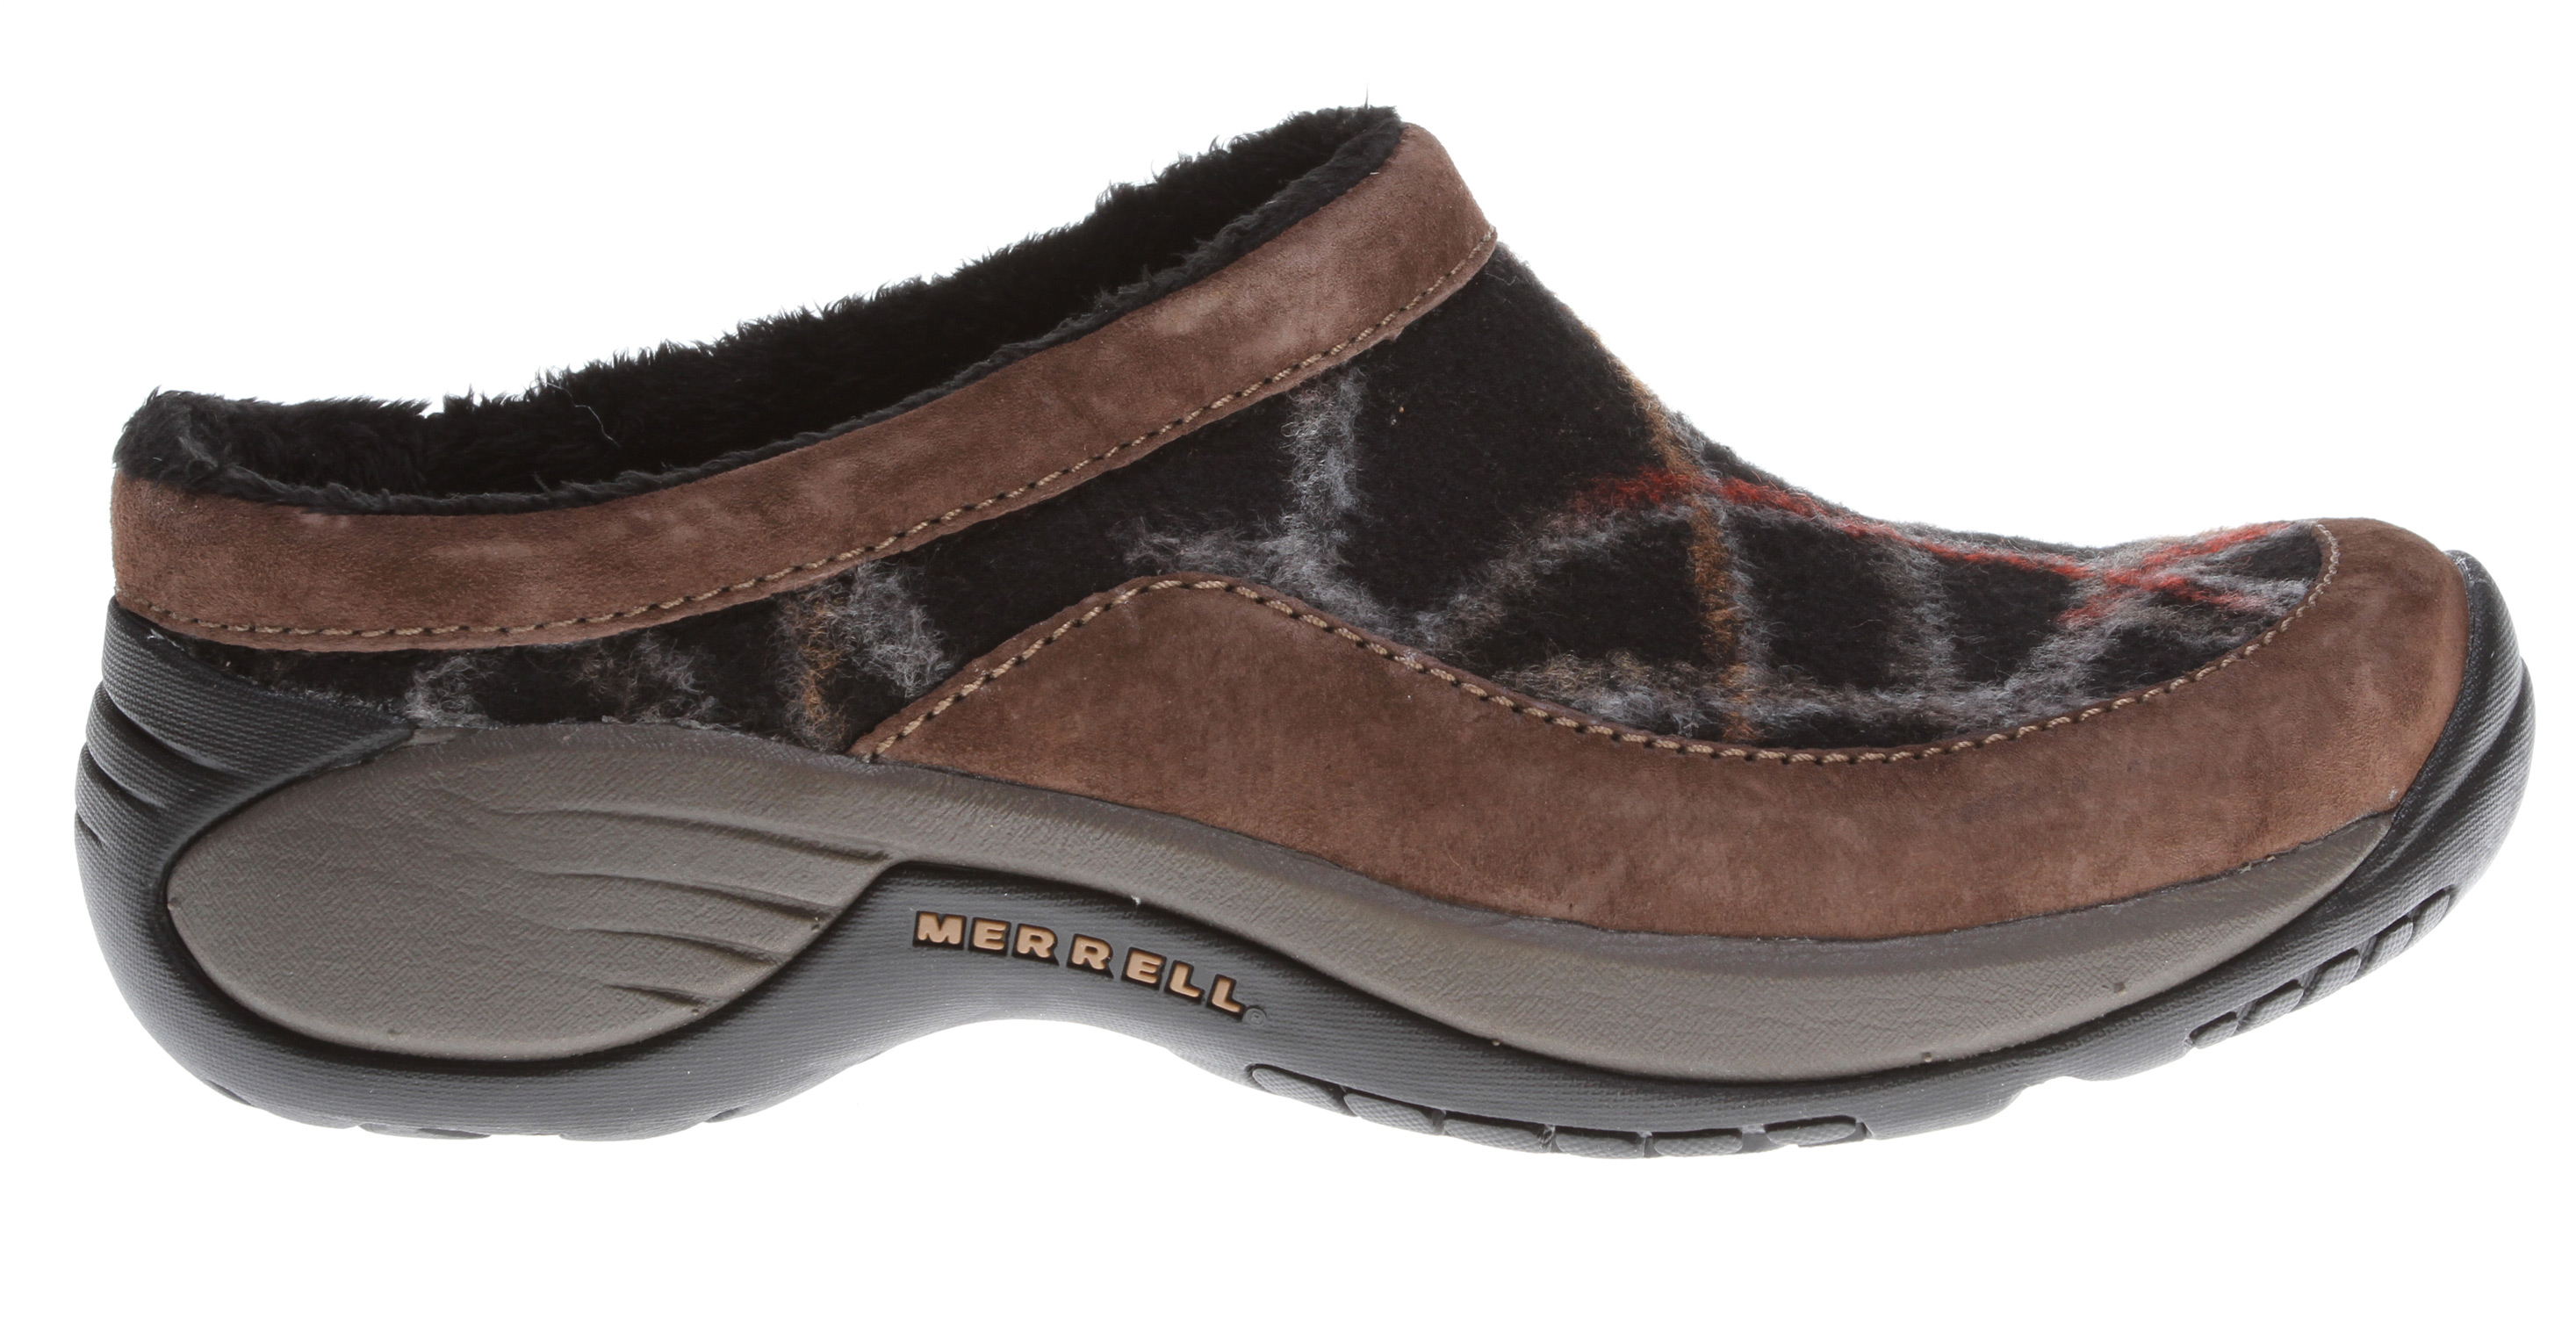 You'll count the days to cold weather with this woolly slip-on clog by the door. Ever faithful, ever versatile Encore walking comfort with women's stride-specific Q-Form Comfort cushioning feels flexible yet supportive all day. With the cozy faux-fur lining and wool/suede, breathable upper, you'll be the happiest person hoofing it around town.Key Features of the Merrell Encore Burst Shoes: Strobel construction offers flexibility and comfort Wool and suede leather upper DWR-treated upper repels water and resists staining Breathable faux fur lining treated with Aegis antimicrobial solution resists odor Molded nylon arch shank Ortholite anatomical footbed Molded nylon arch shank Merrell Qform comfort EVA midsole provides women's specific stride-sequenced cushioning Merrell air cushion in the heel absorbs shock and adds stability Merrell Encore 2 Sole/Sticky Rubber Women's Weight: 1 lb - $72.95